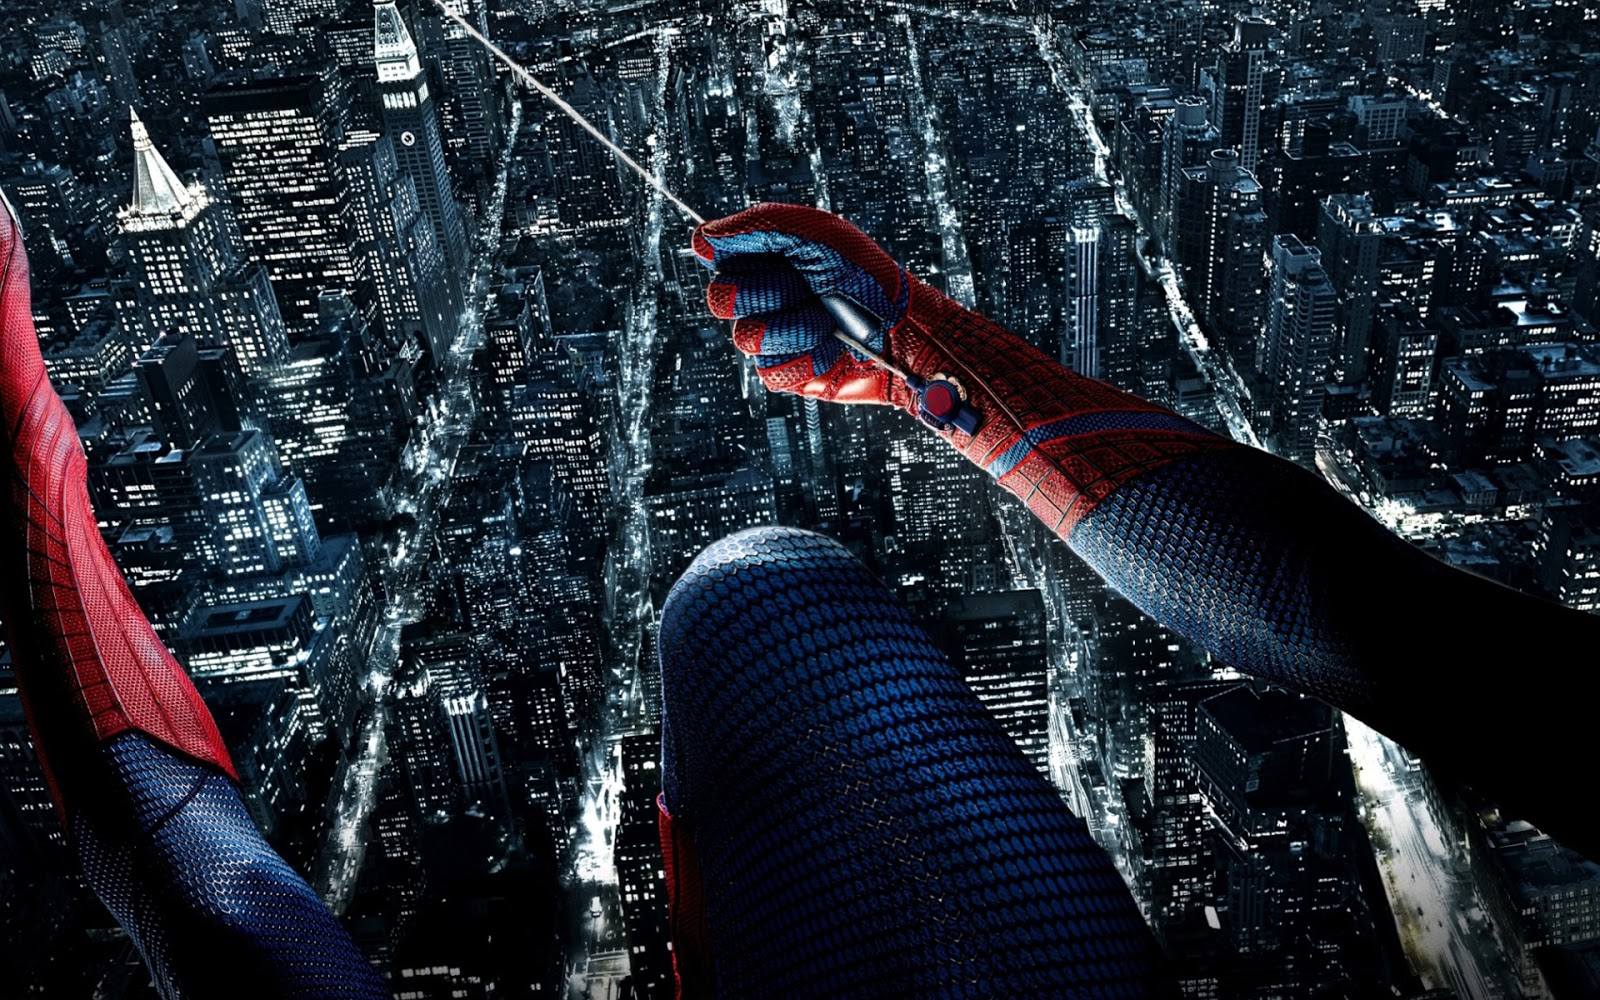 Spiderman 3 Hd Wallpapers 1080p: The Amazing Spiderman HD Wallpapers